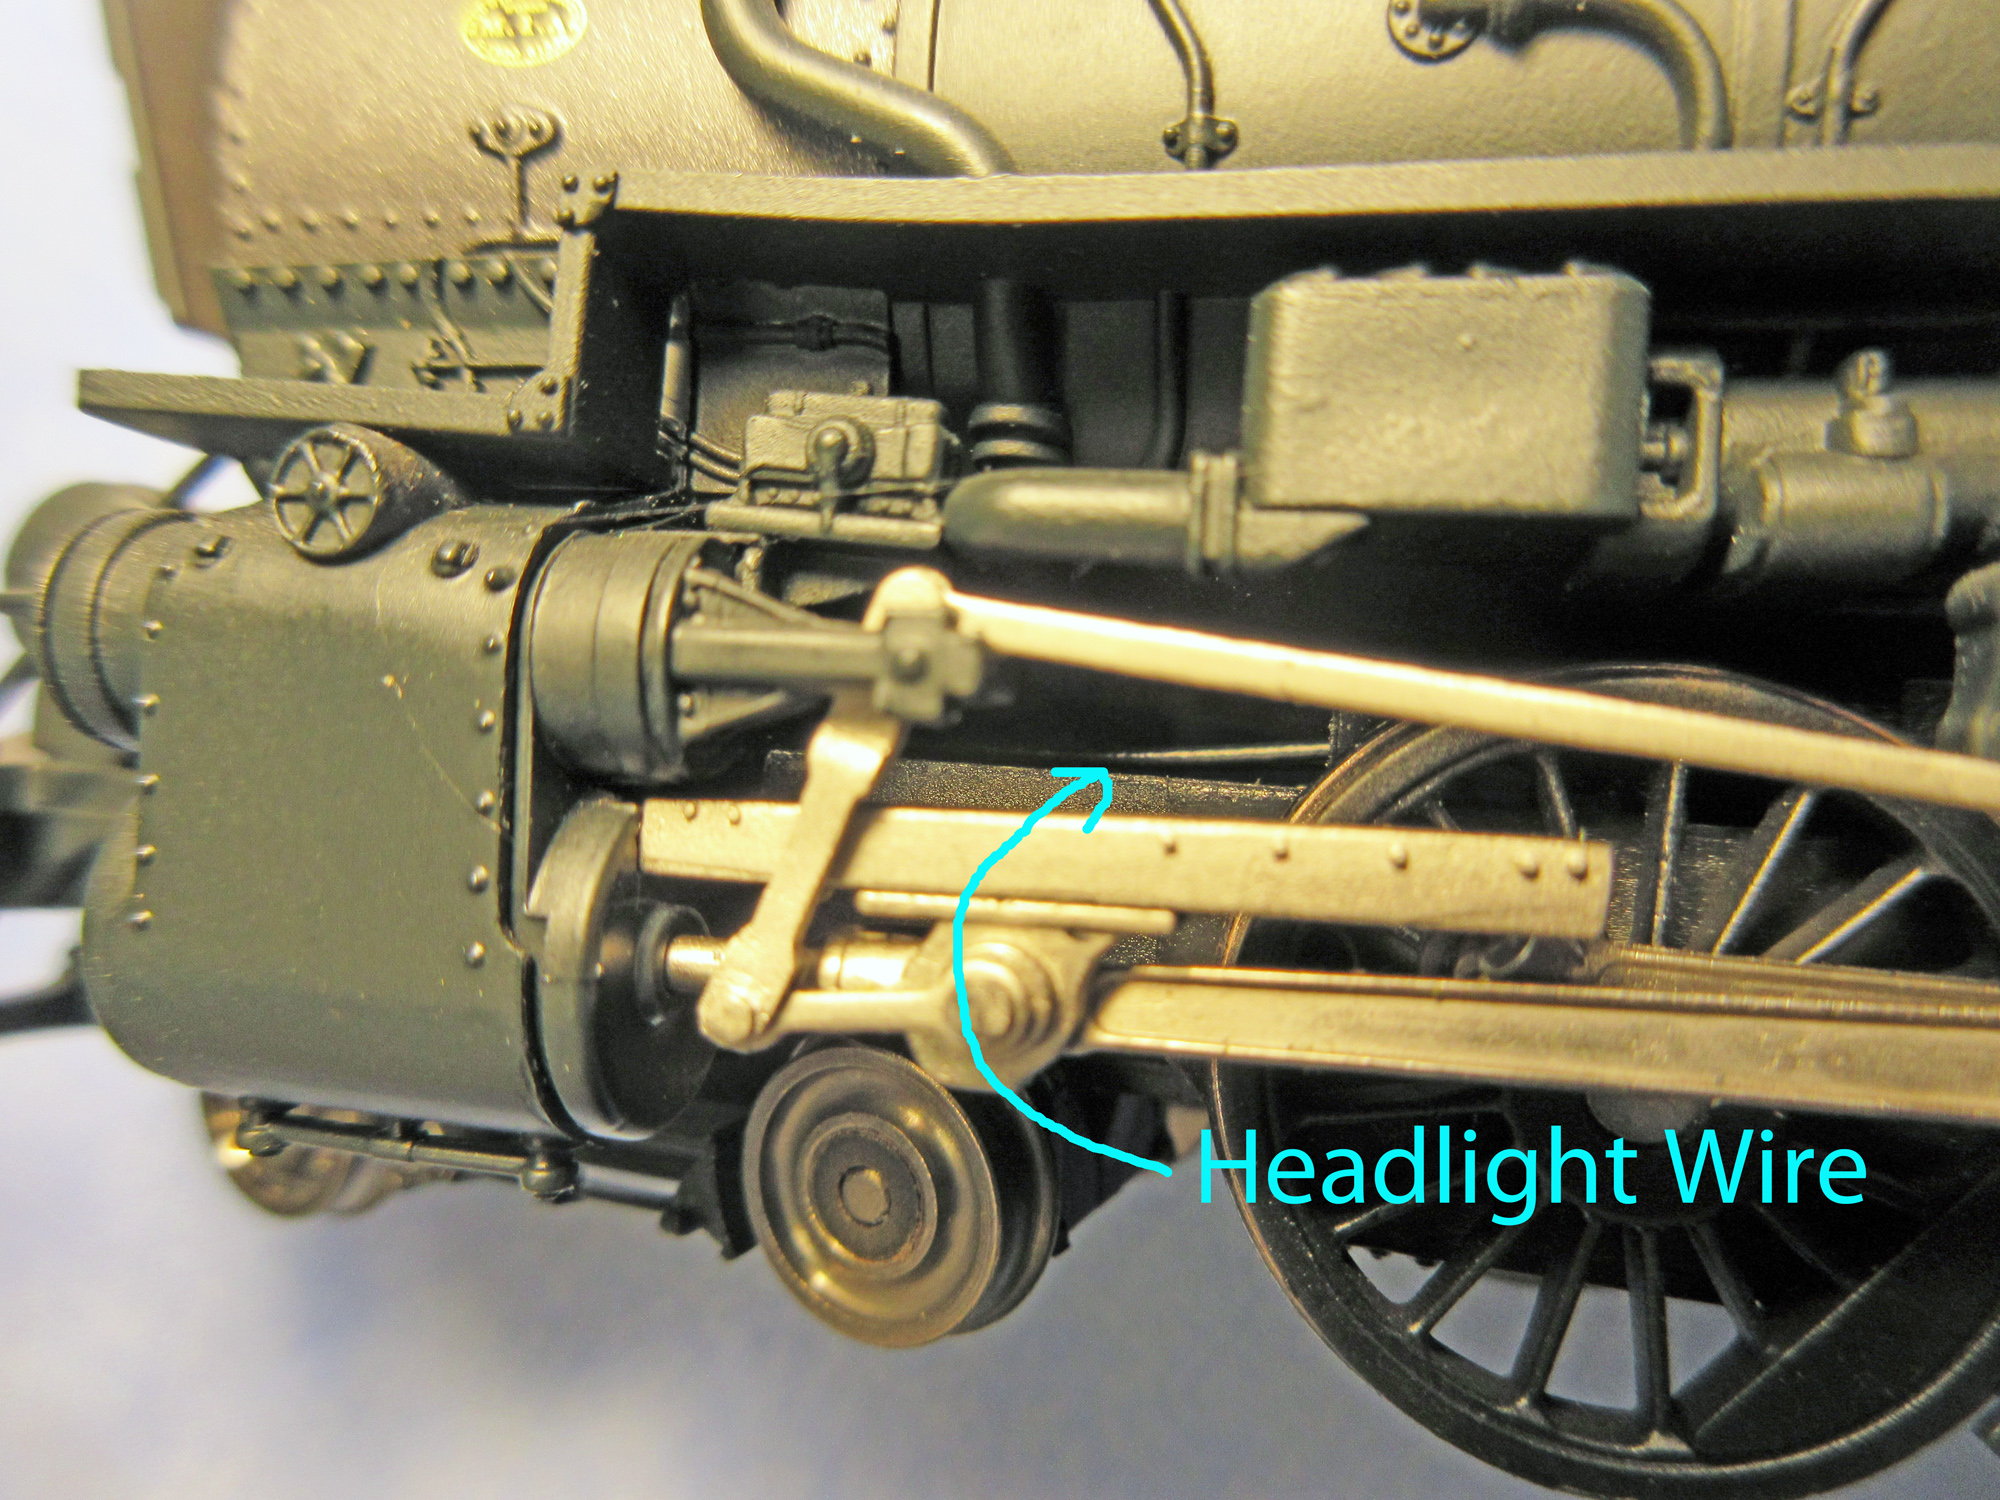 Bli M1a Headlight Wire For Cuda Ken Model Railroader Magazine Head Lights Trains Prr M1bli3